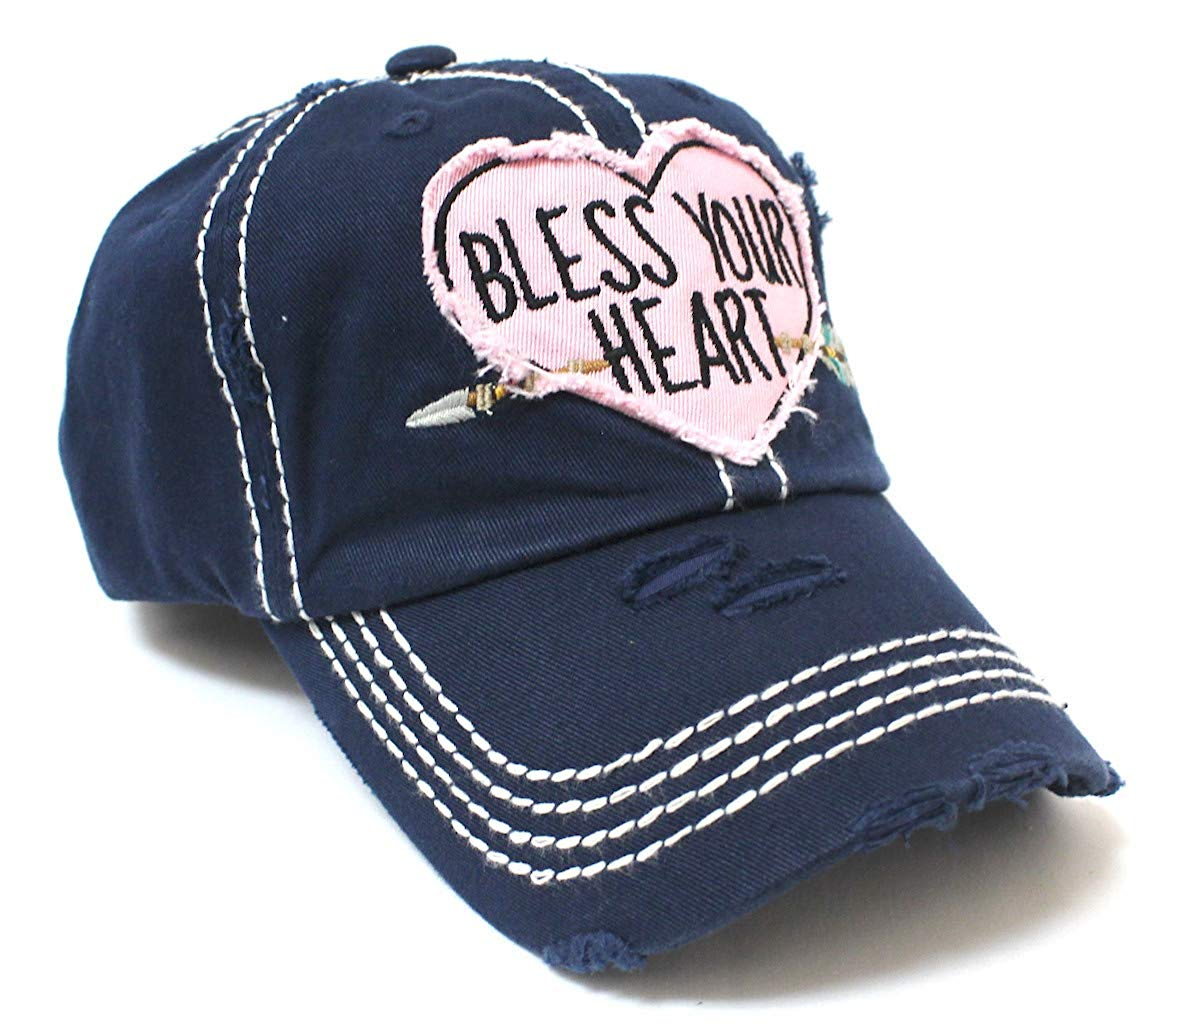 New!! Navy Bless Your Heart Heart & Arrow Vintage Hat - Caps 'N Vintage